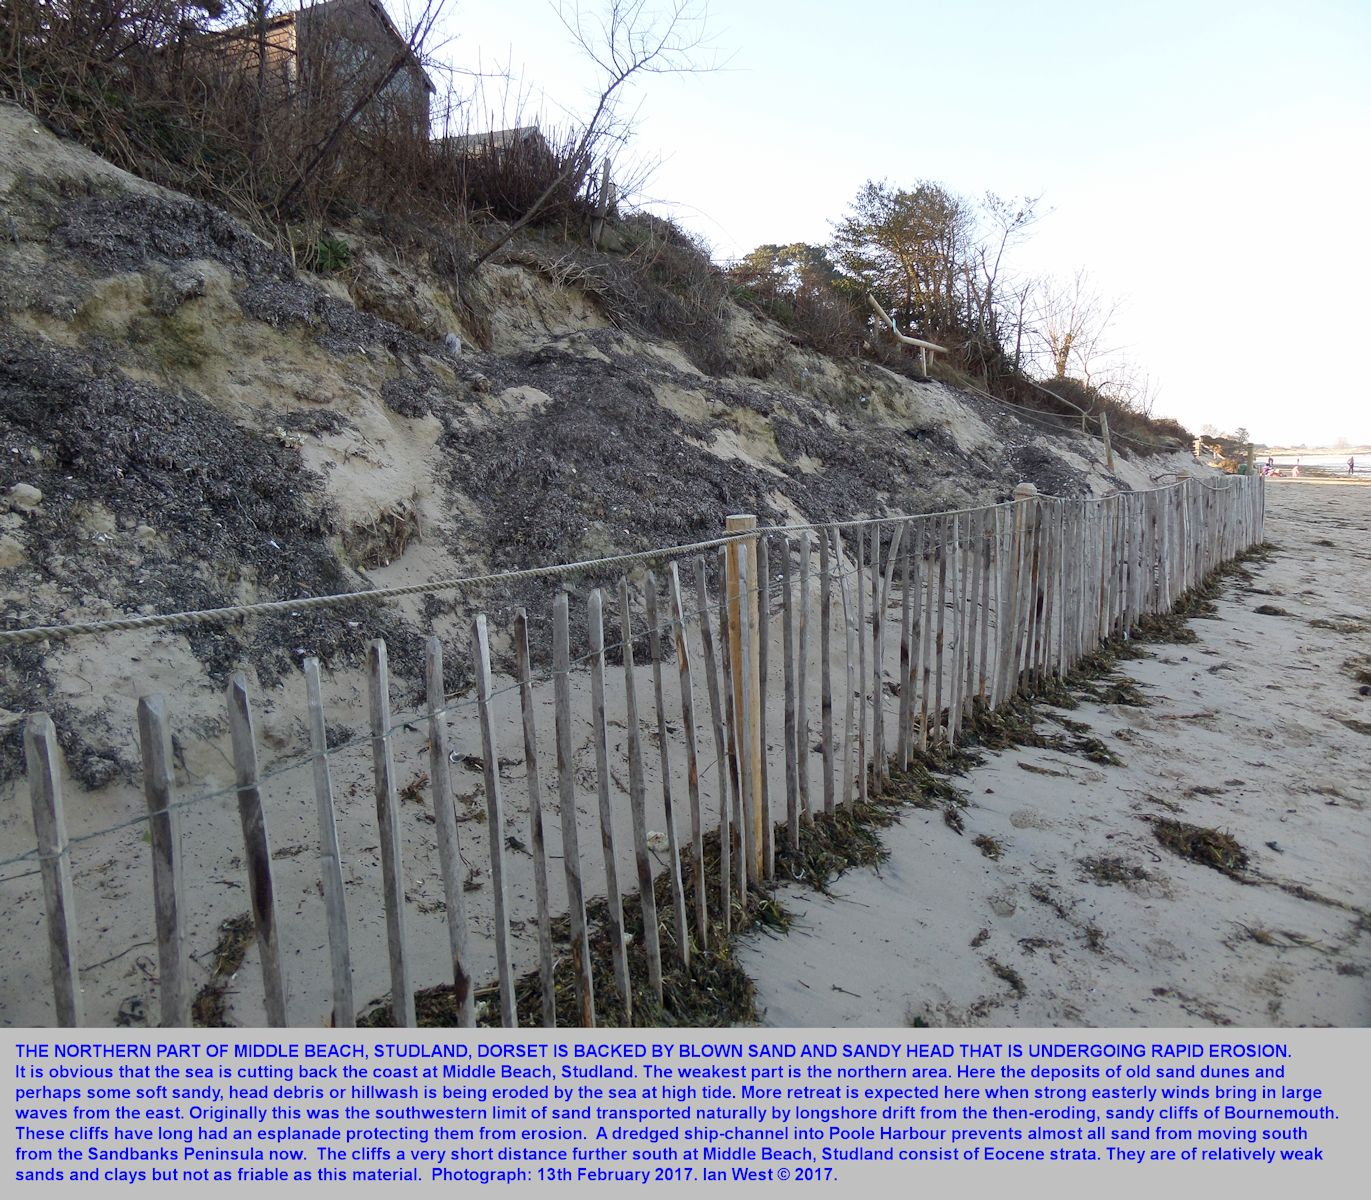 A very weak cliff of sand and sandy head at the northern end of Middle Beach, Studland, Dorset, is being rapidly eroded, as shown in February 2017